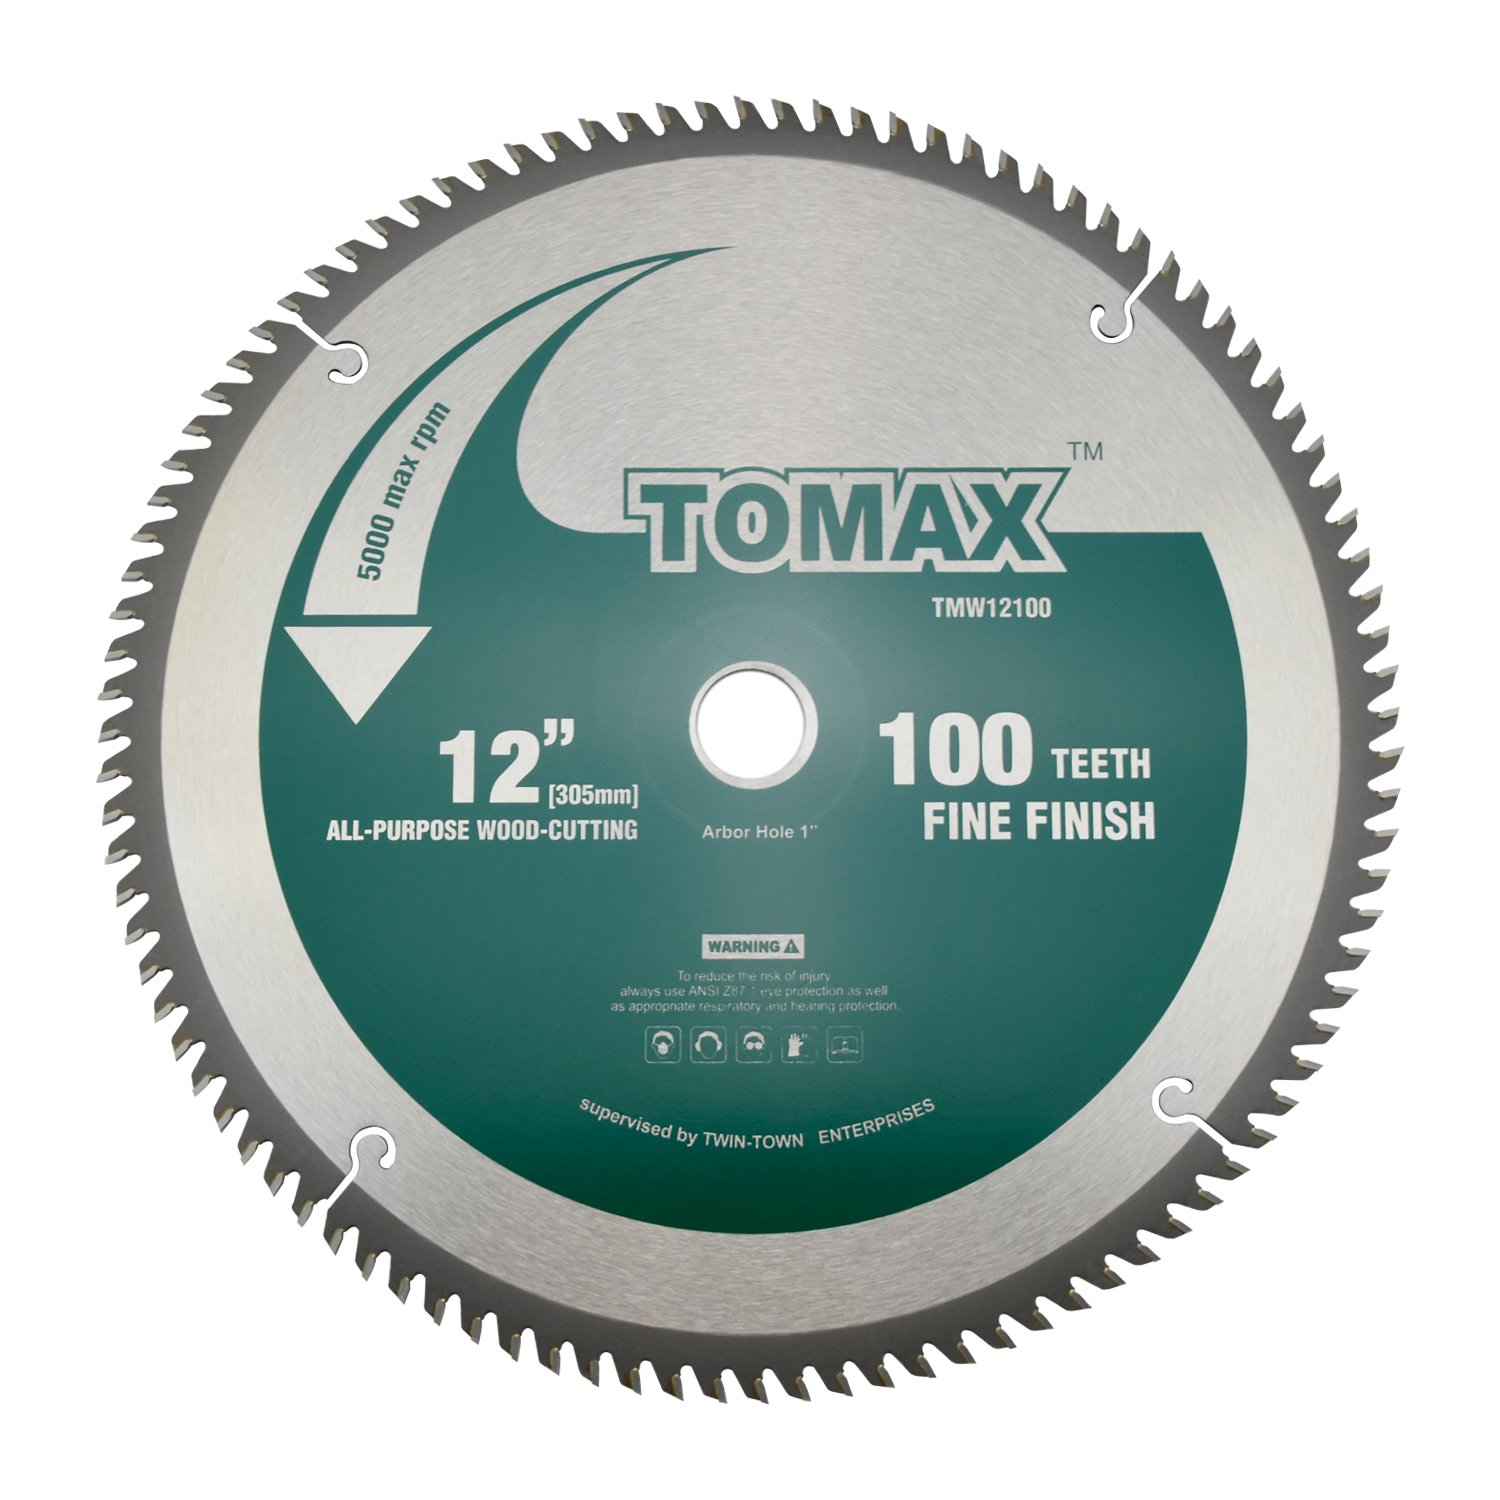 TOMAX 12-Inch 100 Tooth Miter saw Blade